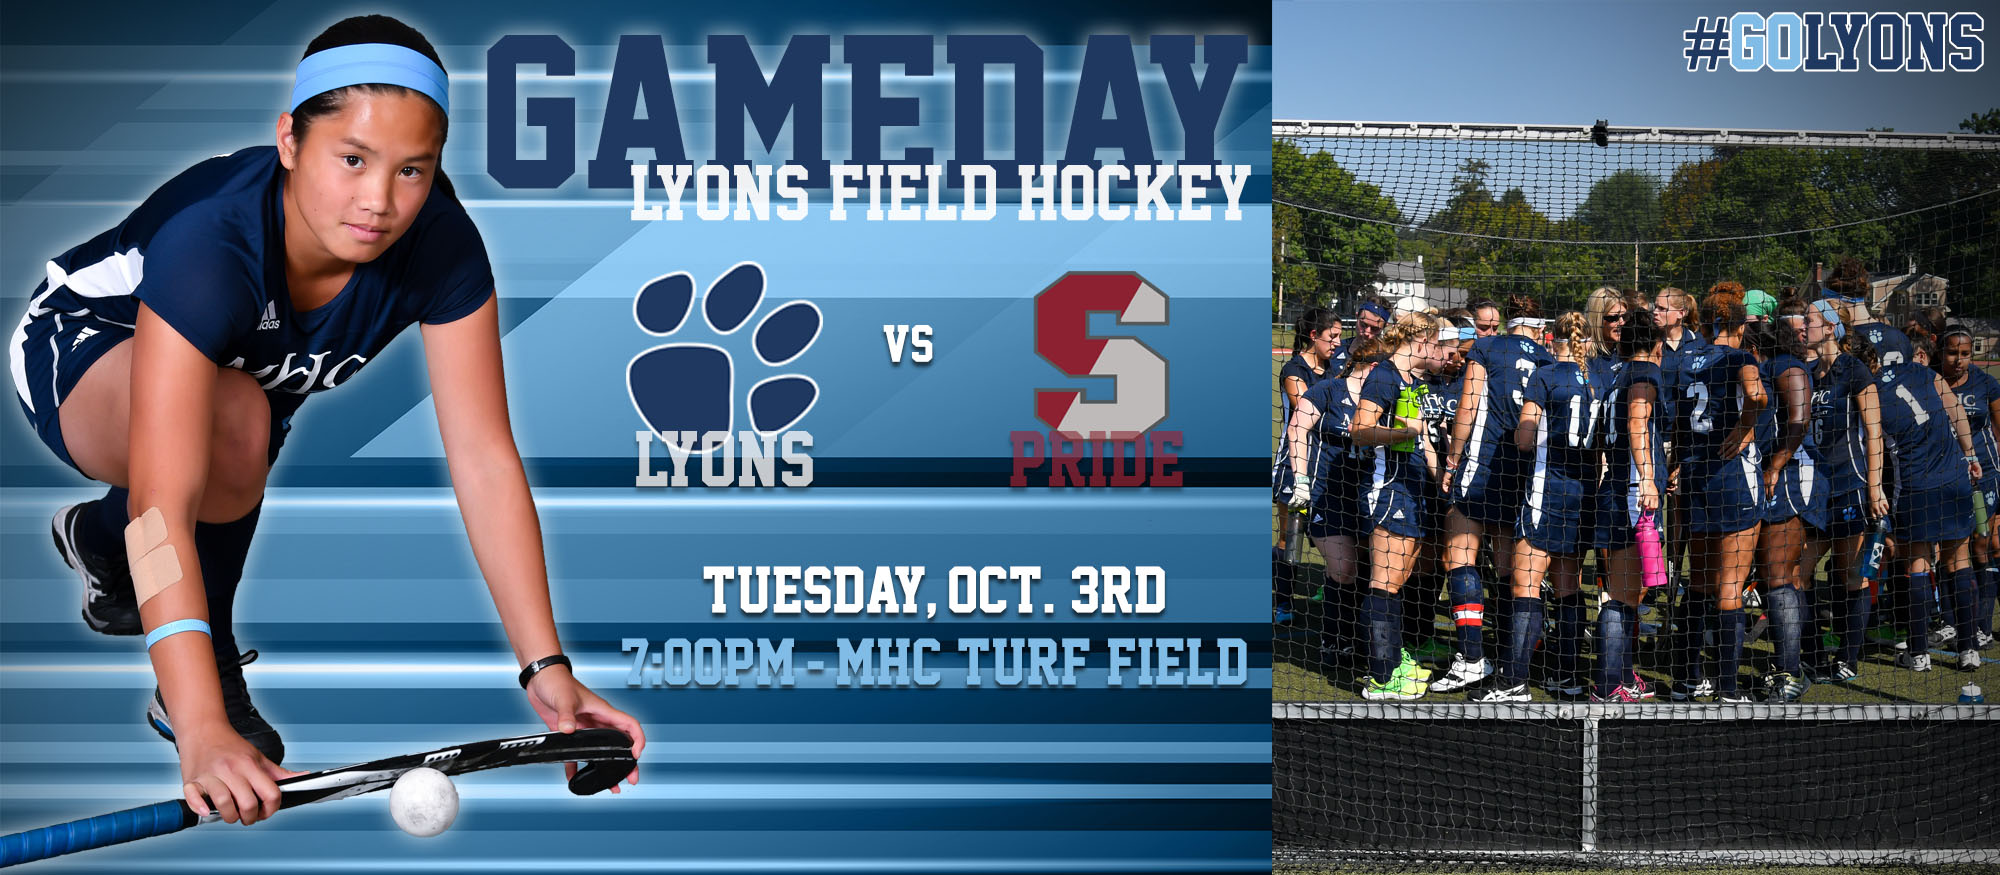 Gameday preview image for Lyons field hockey versus Springfield College on October 3rd on the Turf Field